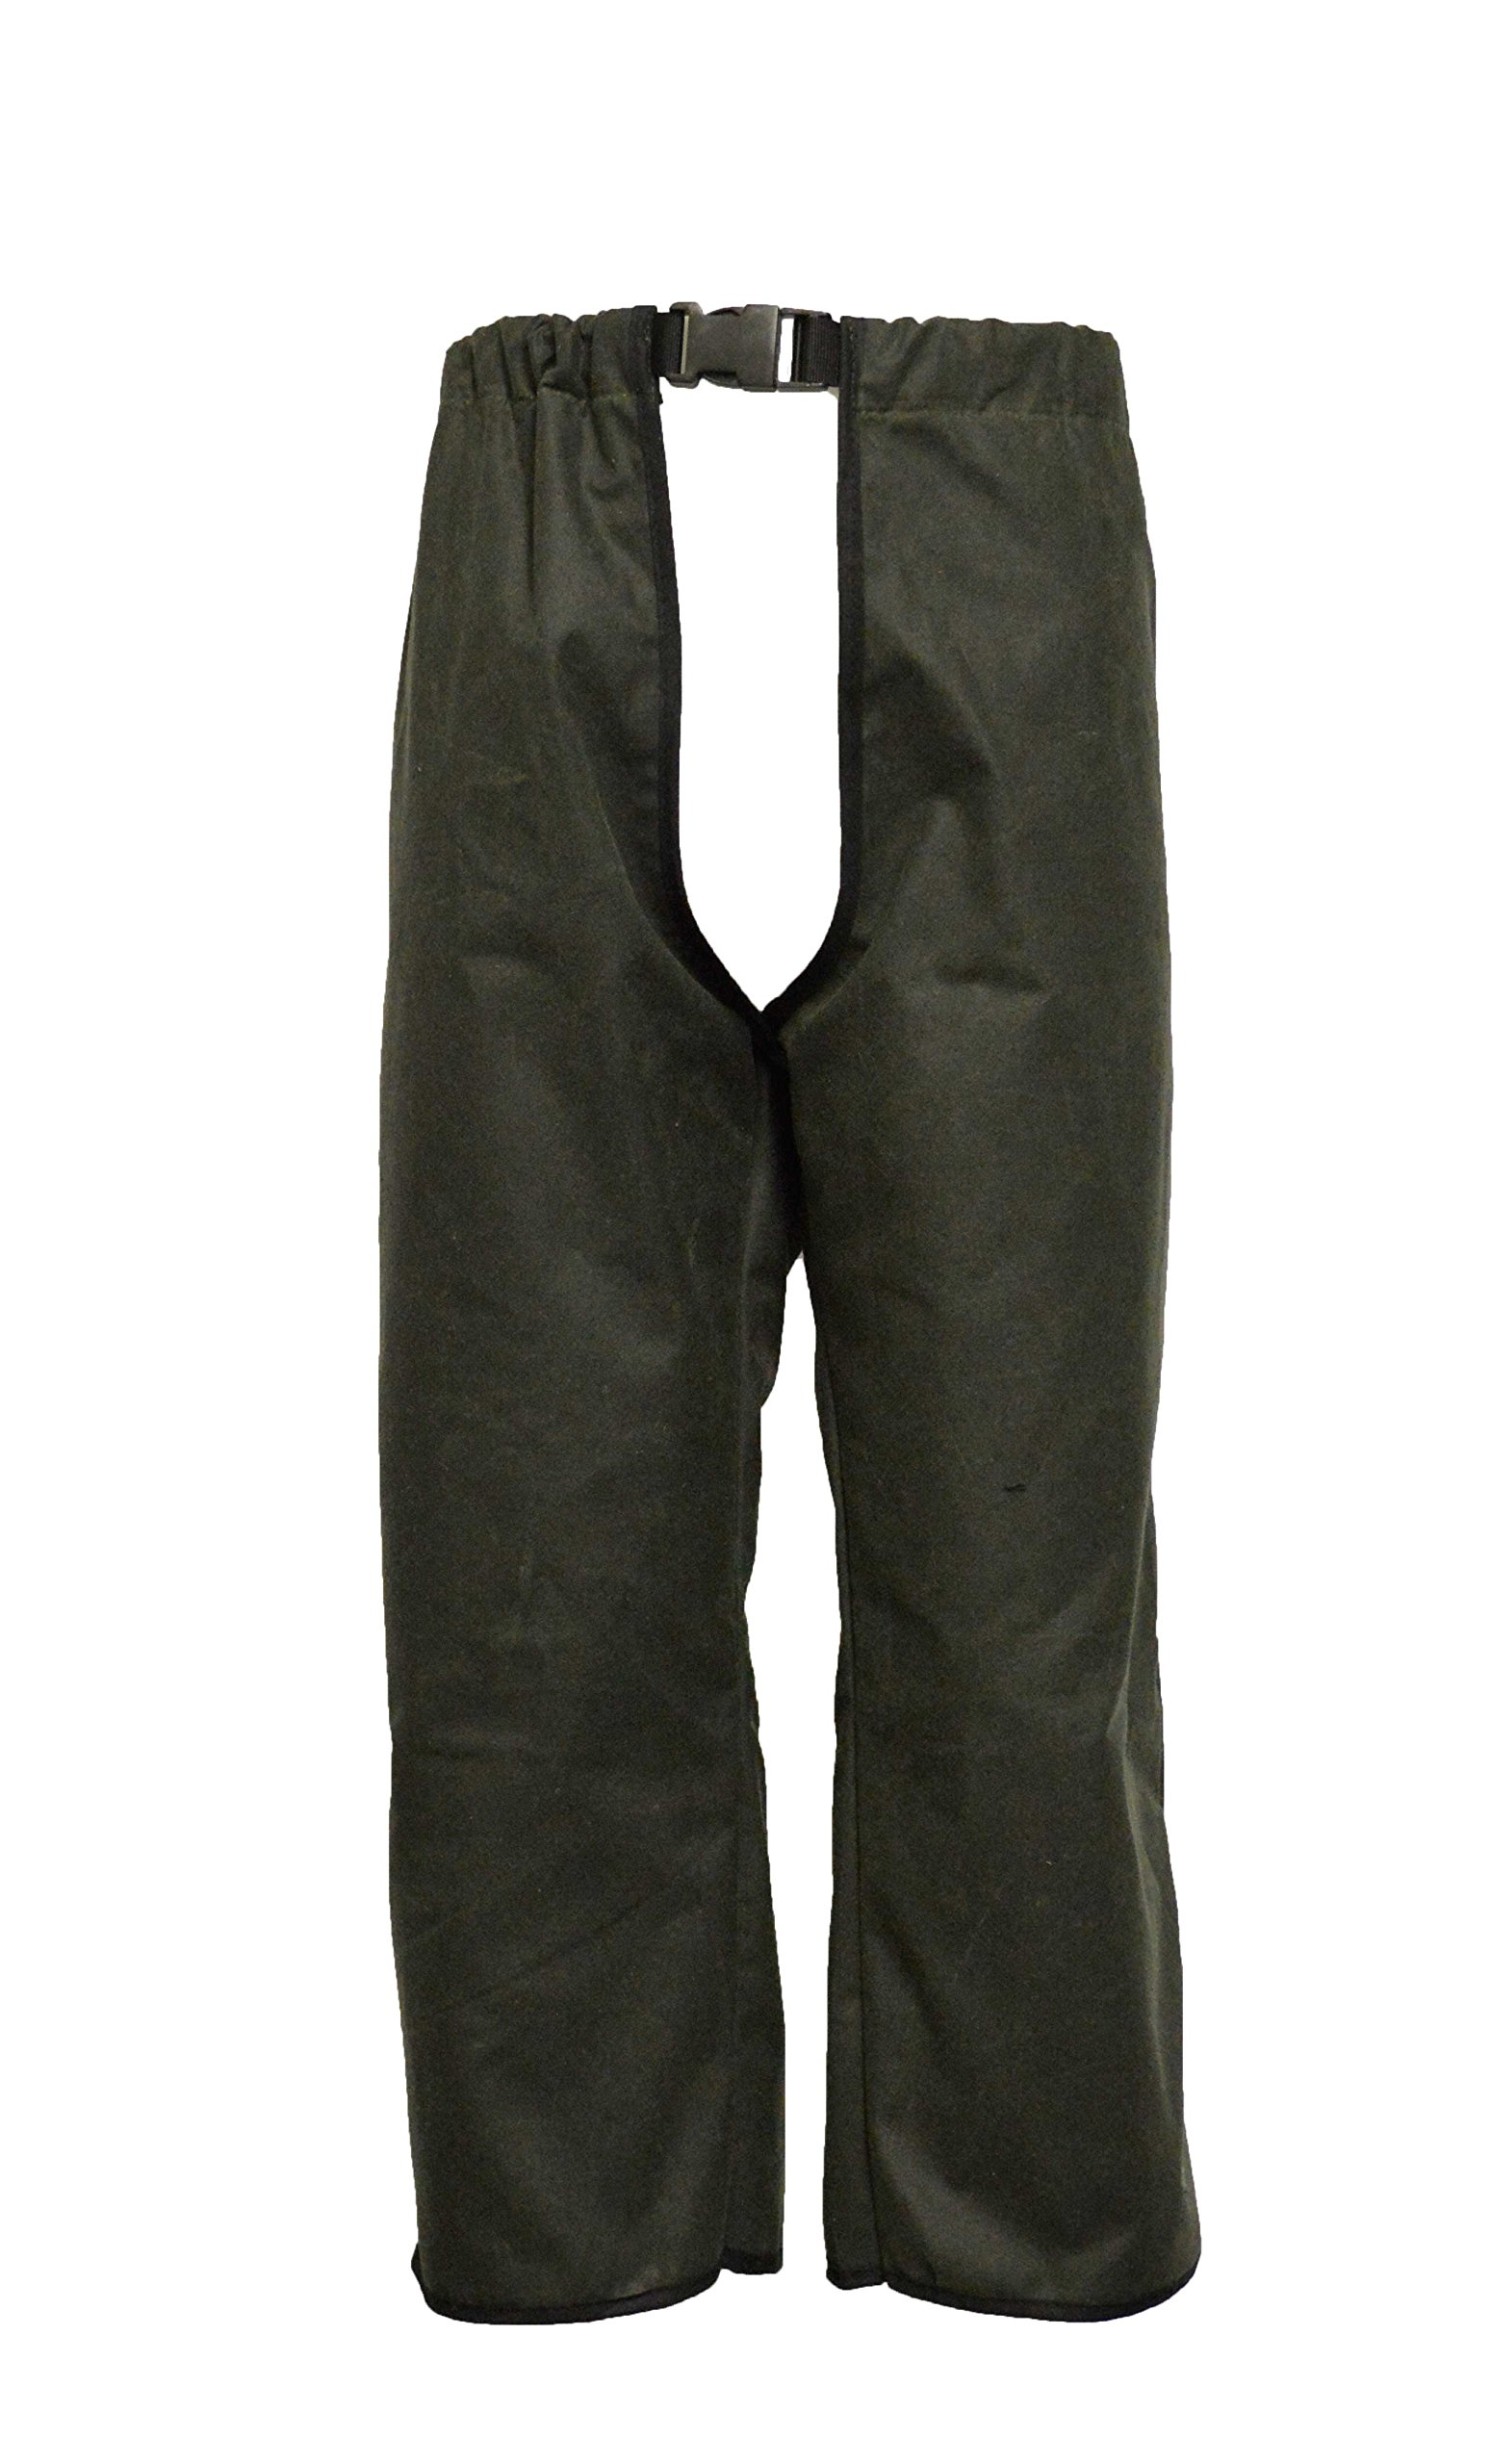 Walker and Hawkes Men's Wax Treggings Trousers XX-Large Olive